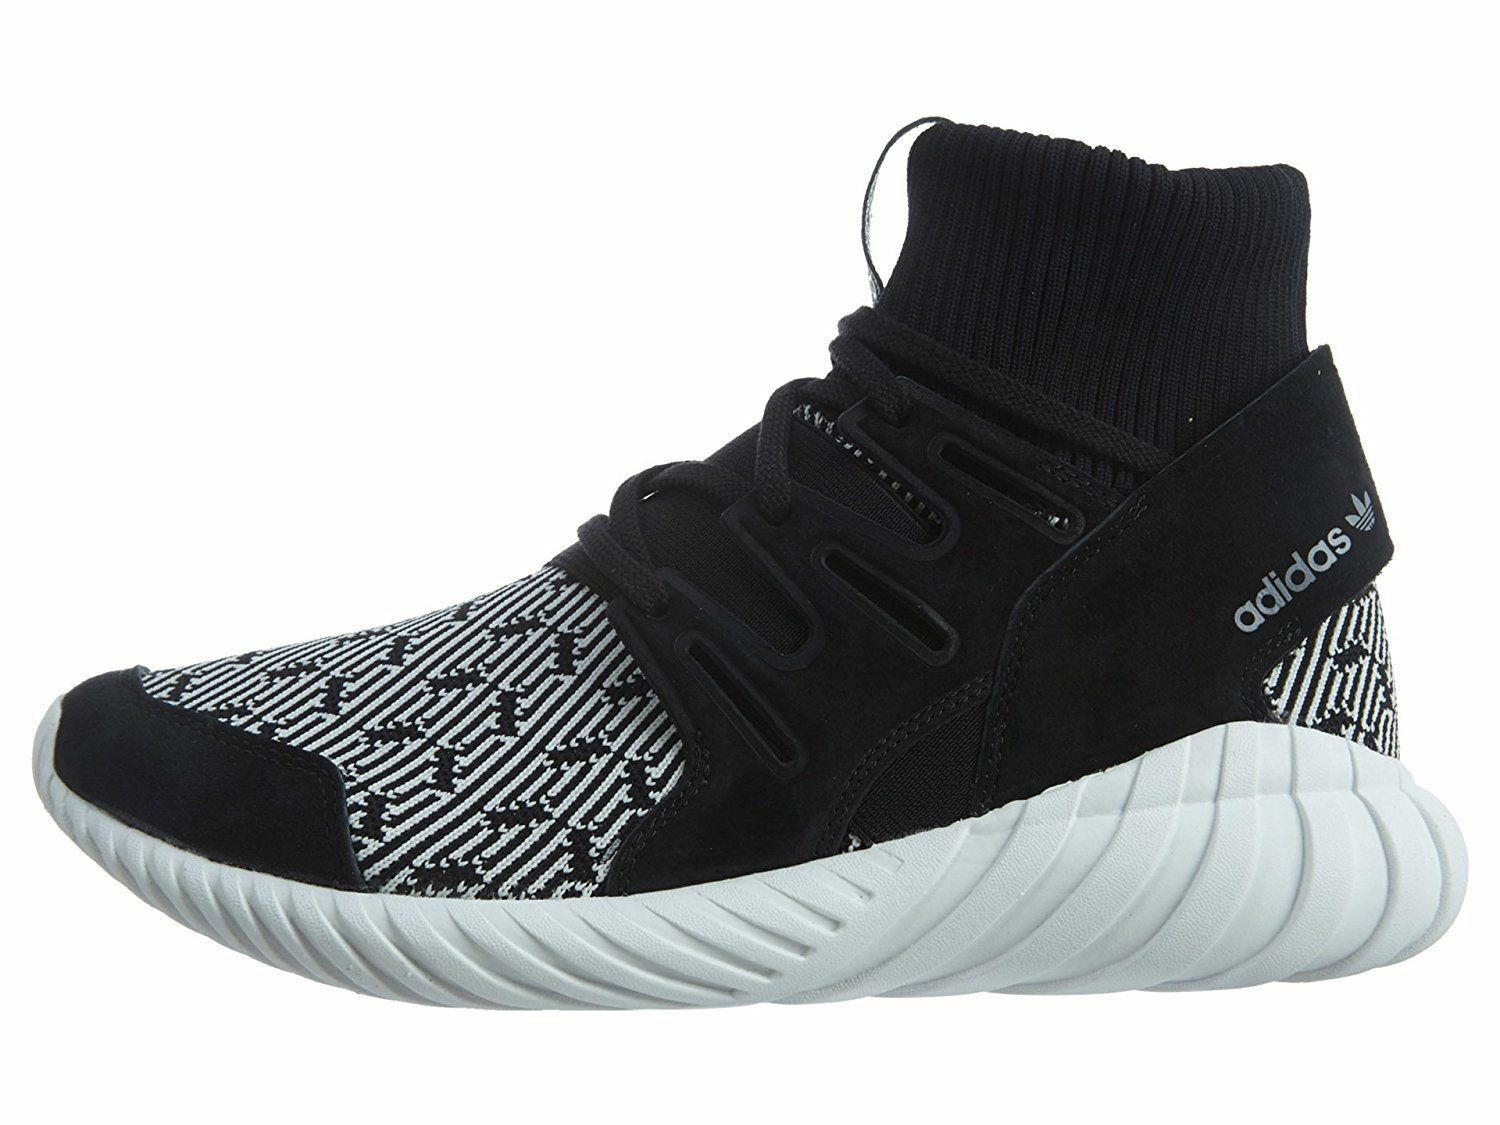 NEW ADIDAS TUBULAR DOOM PK CORE BLACK VINTAGE WHITE PRIMEKNIT S80096 Mens SZ 10